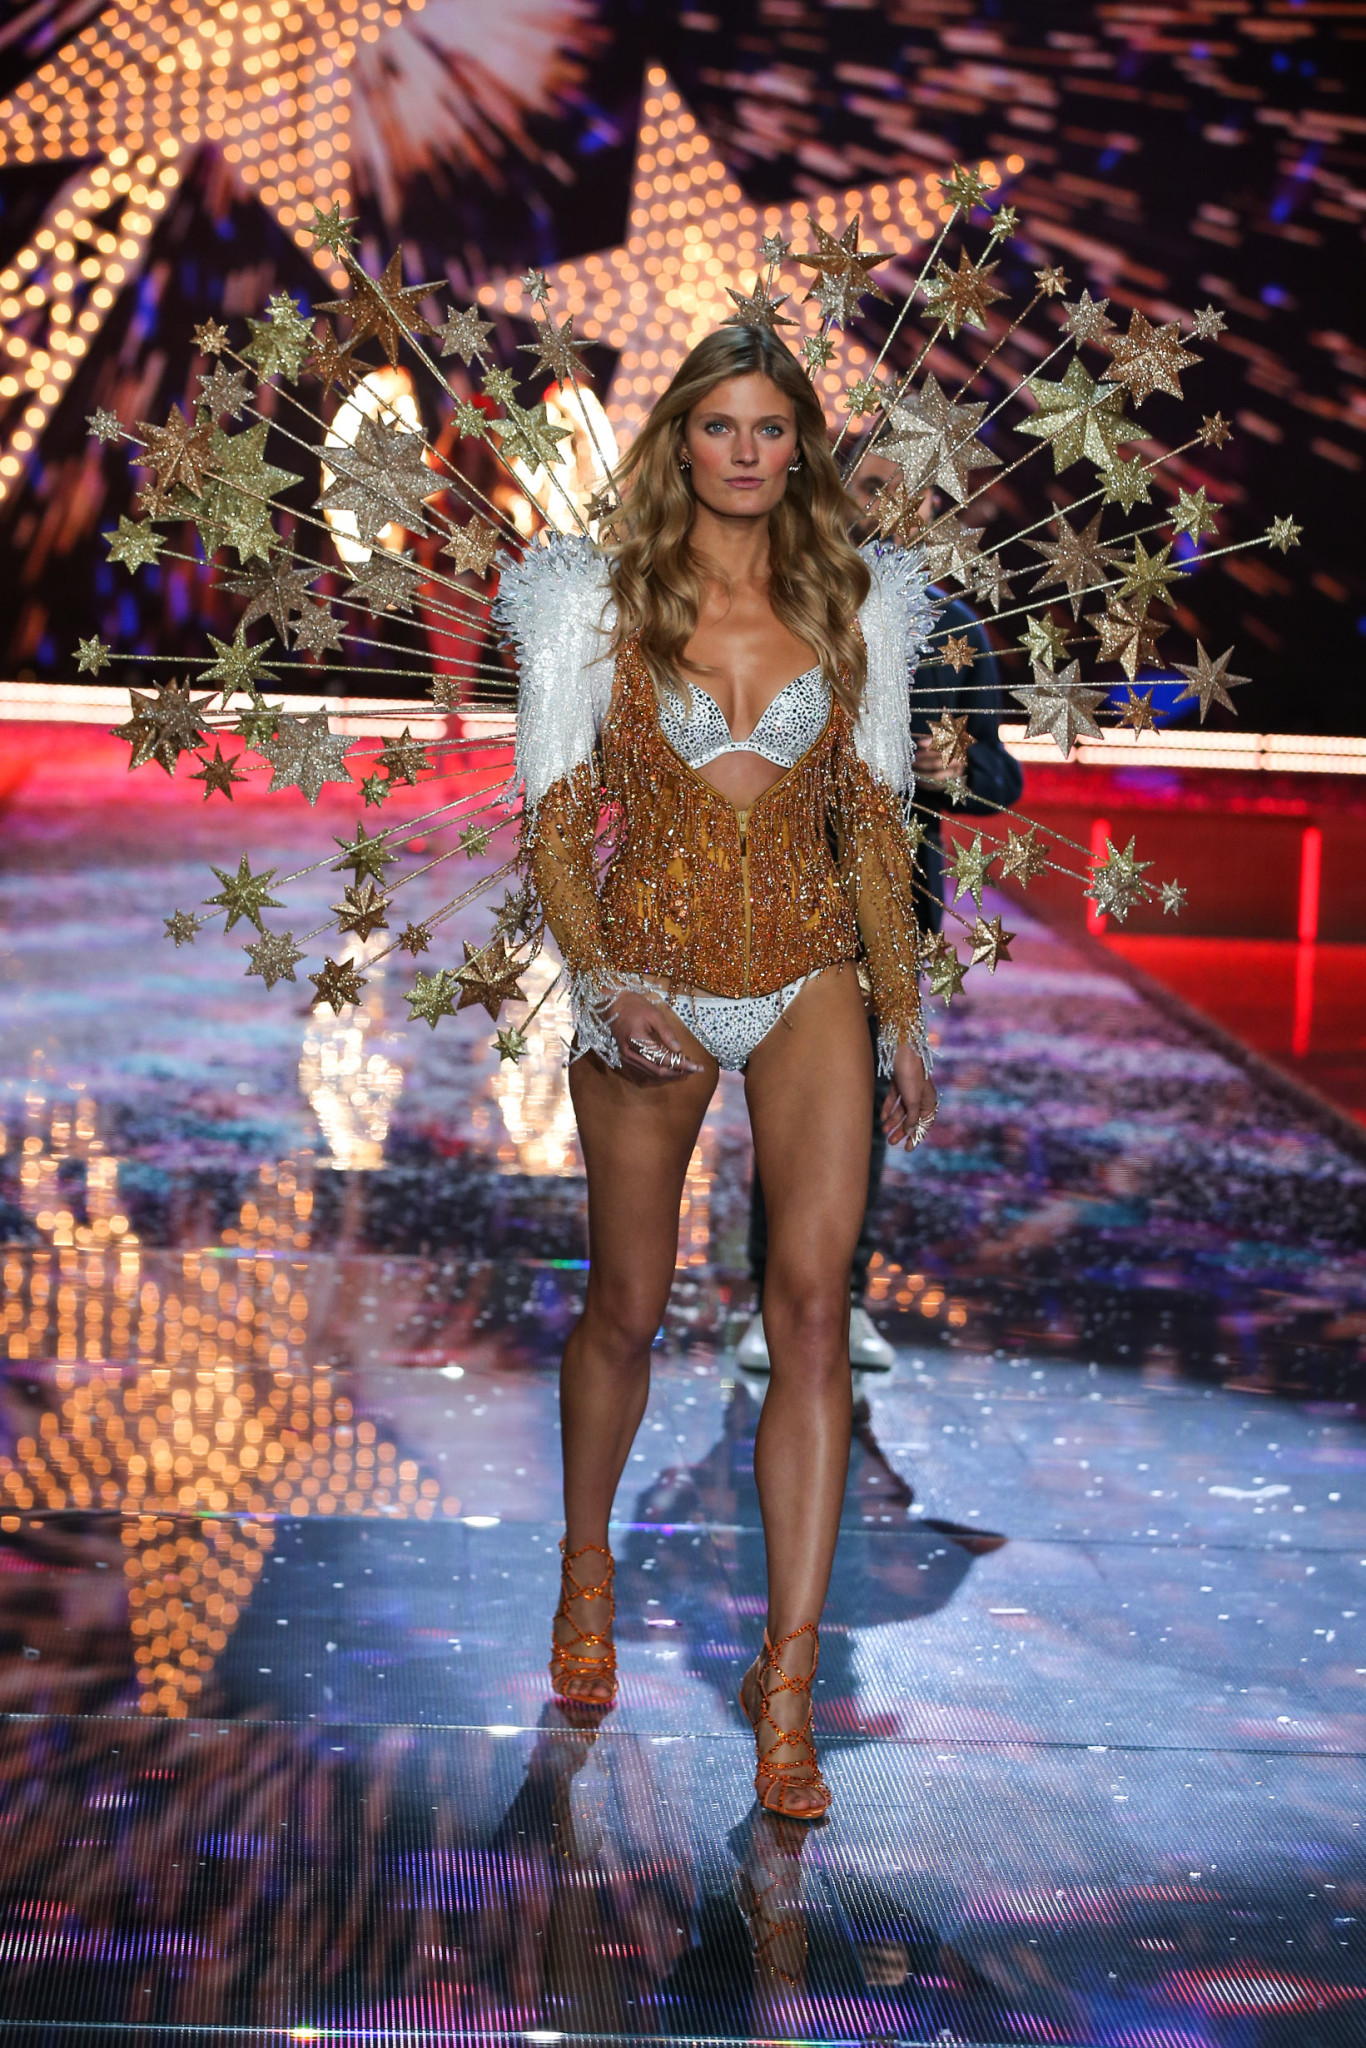 Constance walks the runway at the 2015 Victoria's Secret Fashion Show in New York City on November 10th, 2015